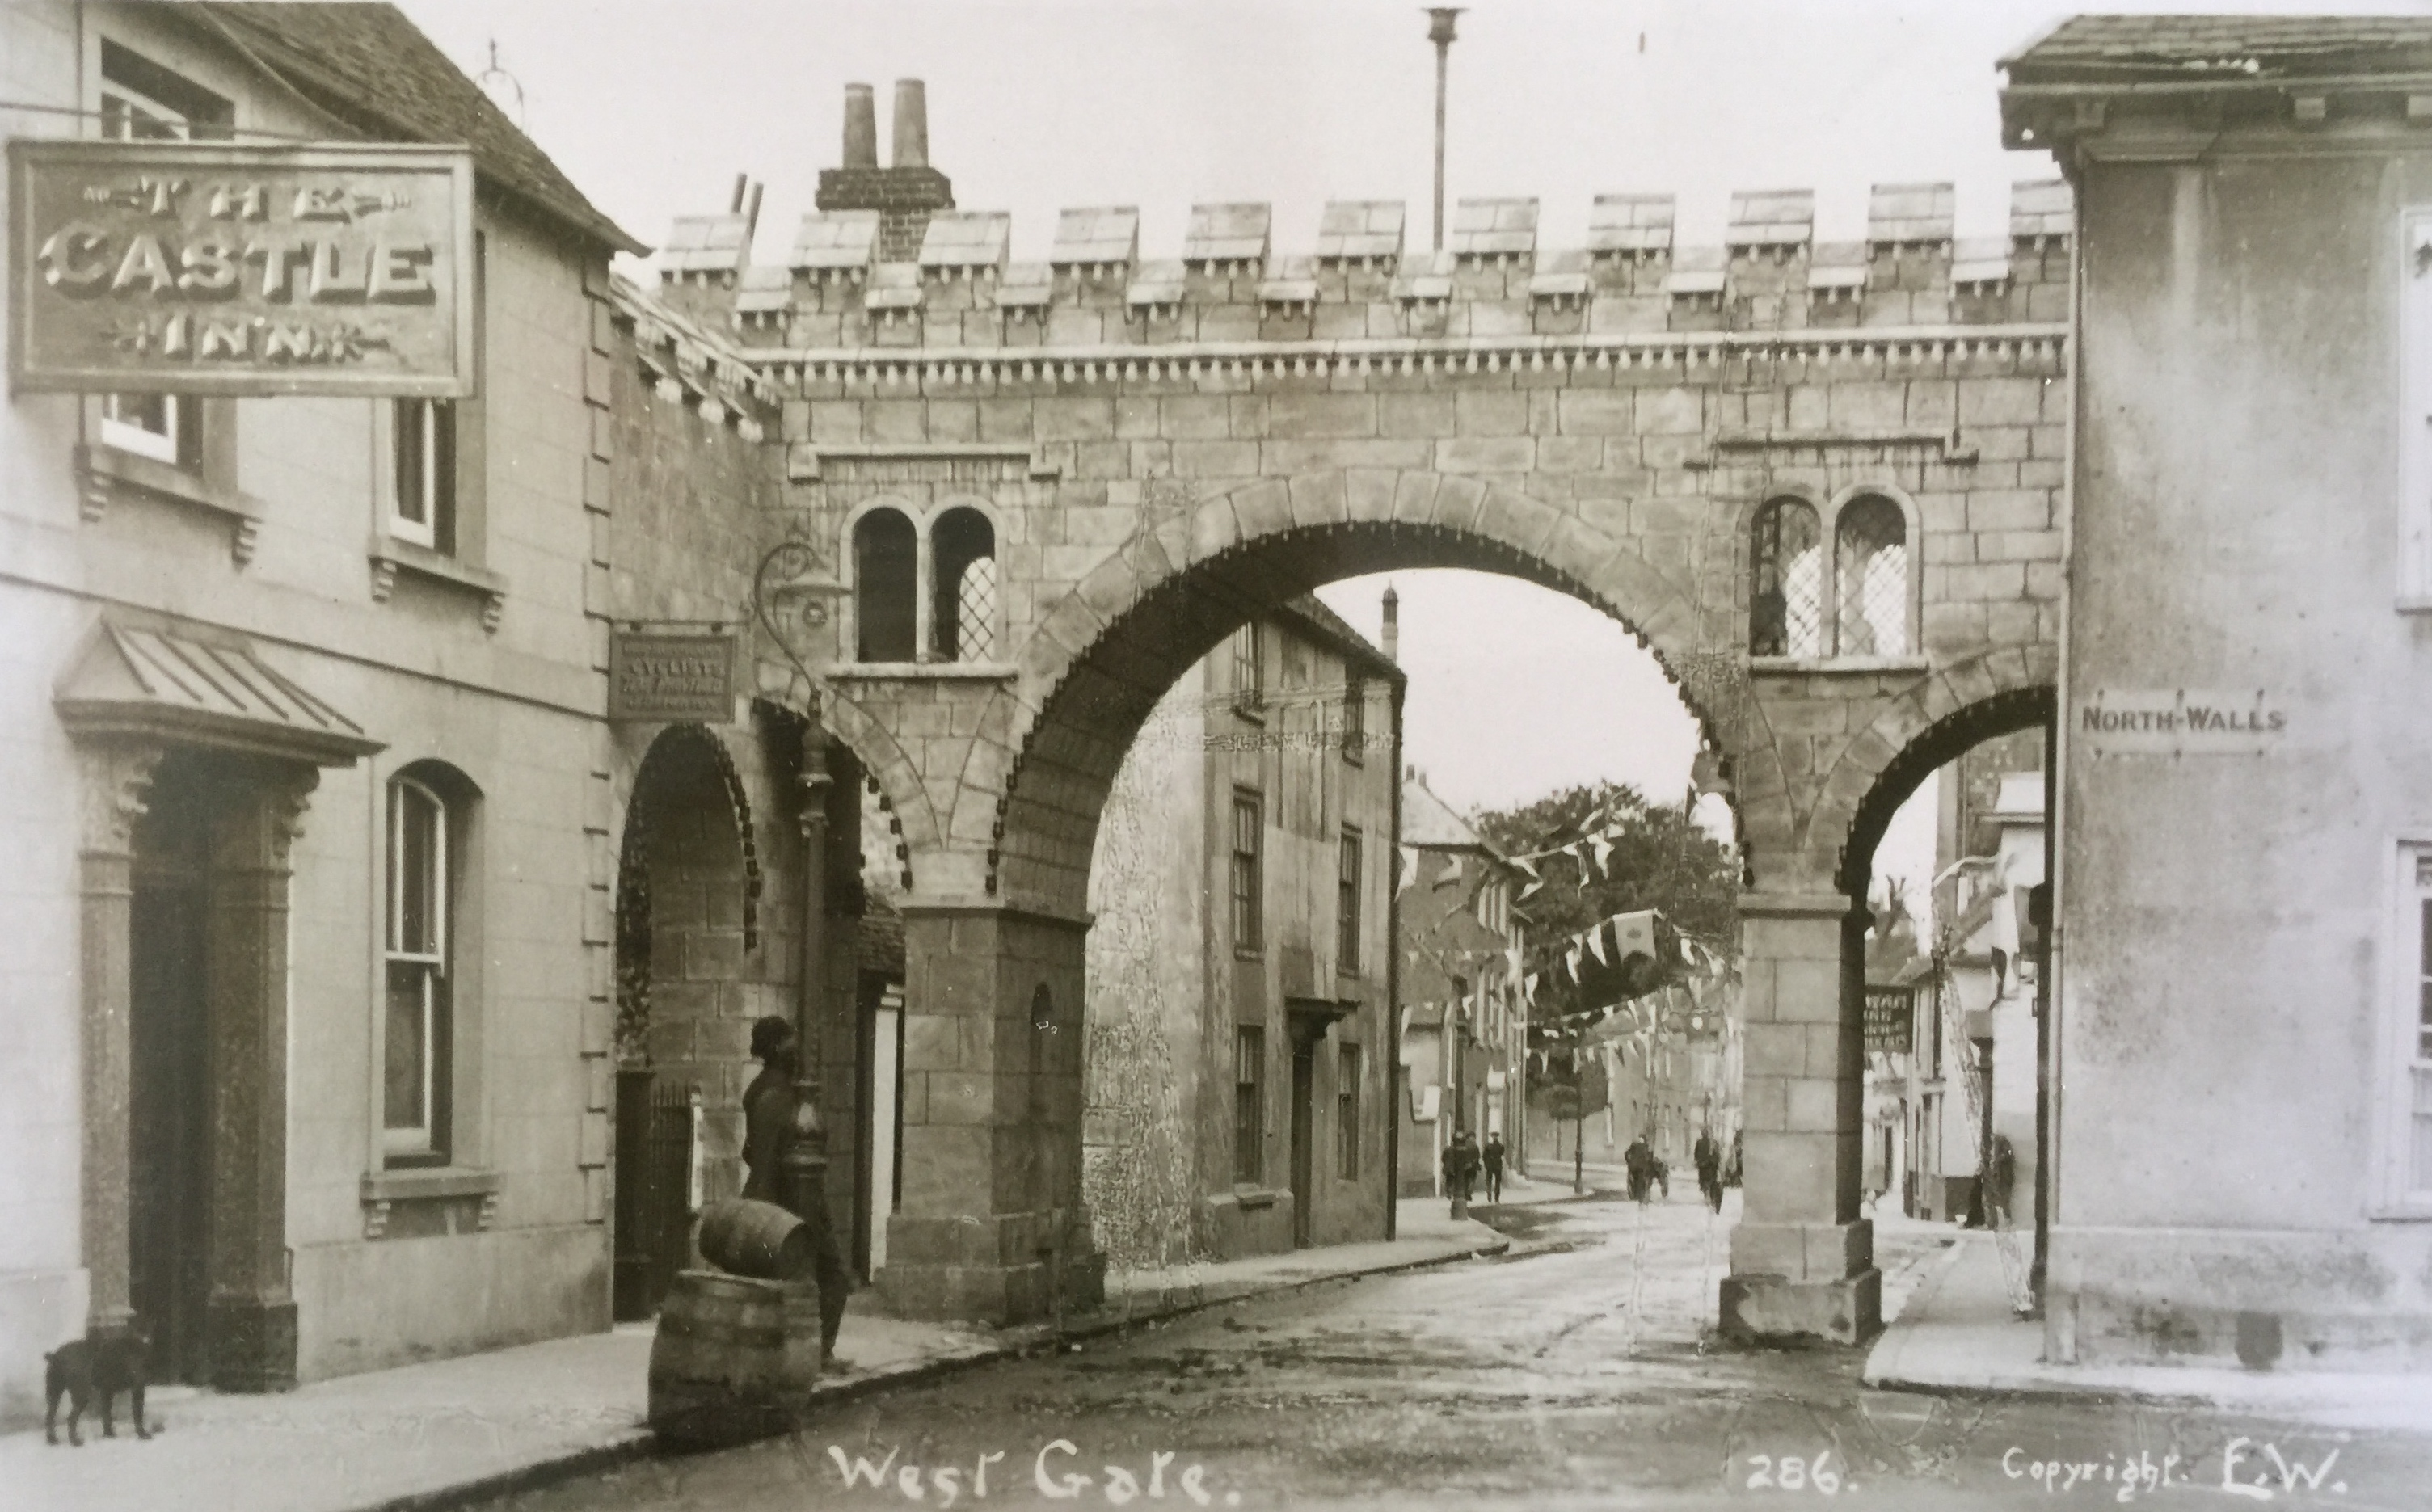 Ceremonial Arch at the West Gate 1911, looking towards Westgate